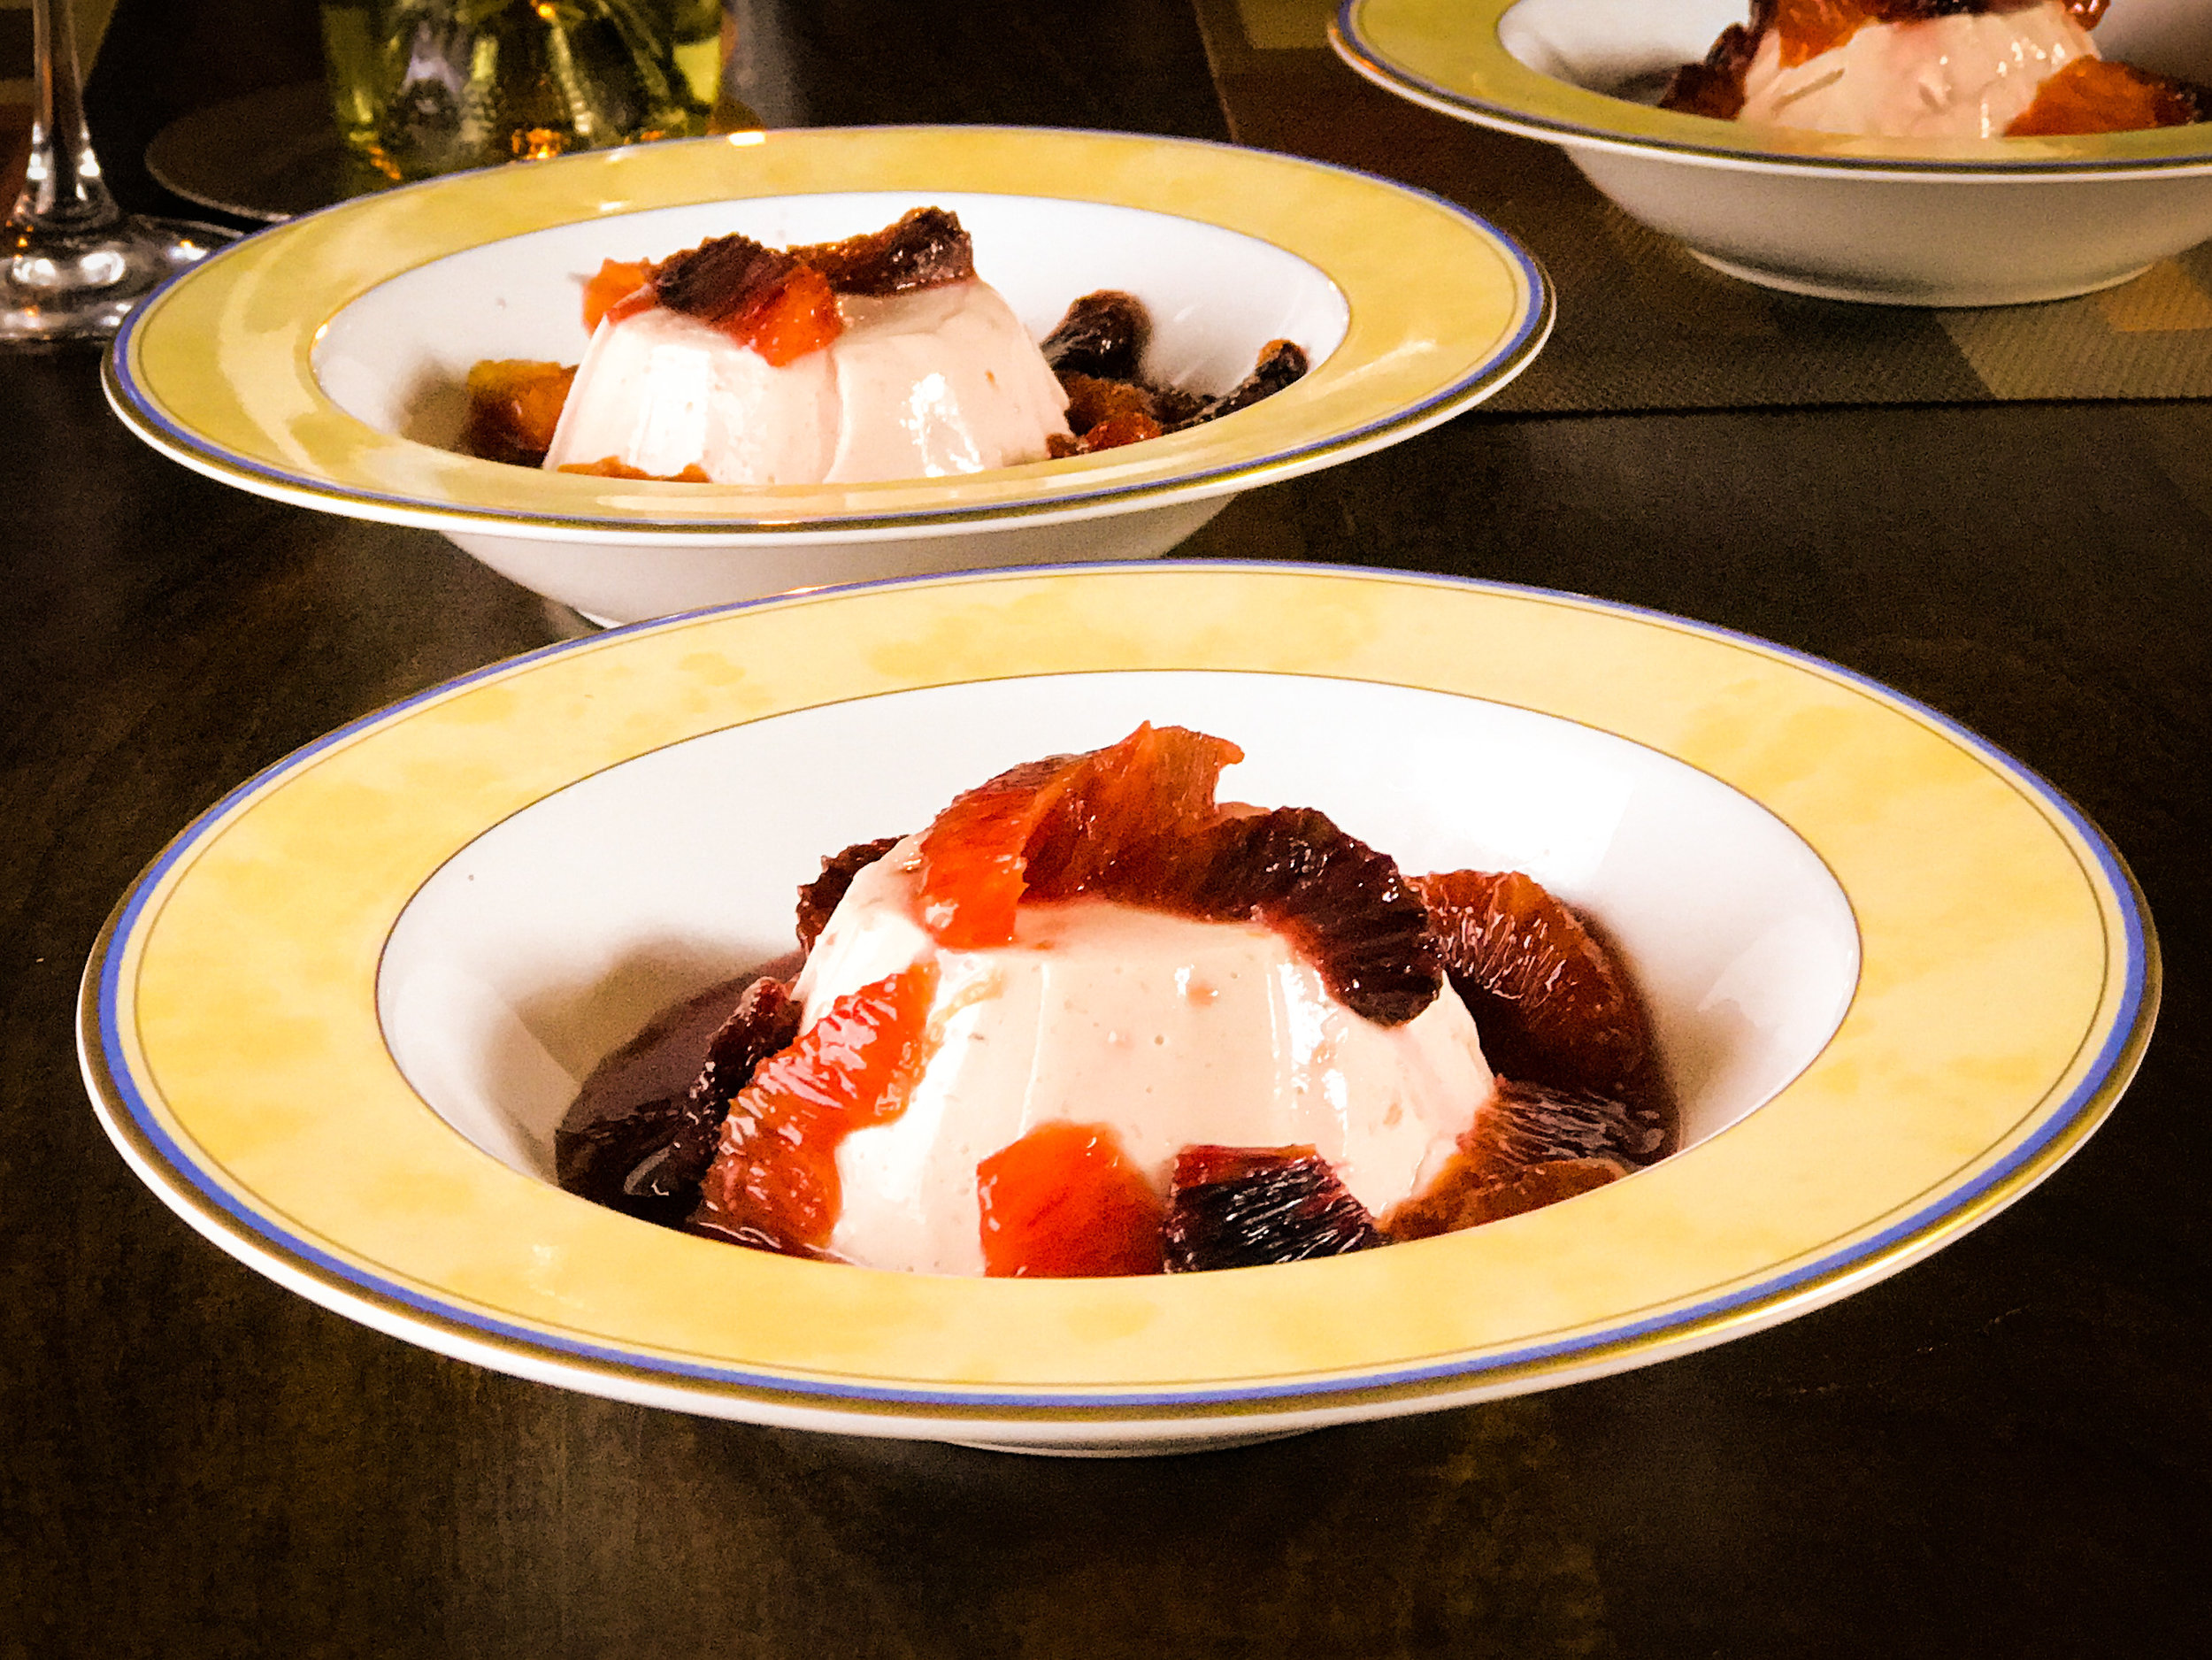 Cooks Without Borders' blood orange panna cotta with blood orange compote